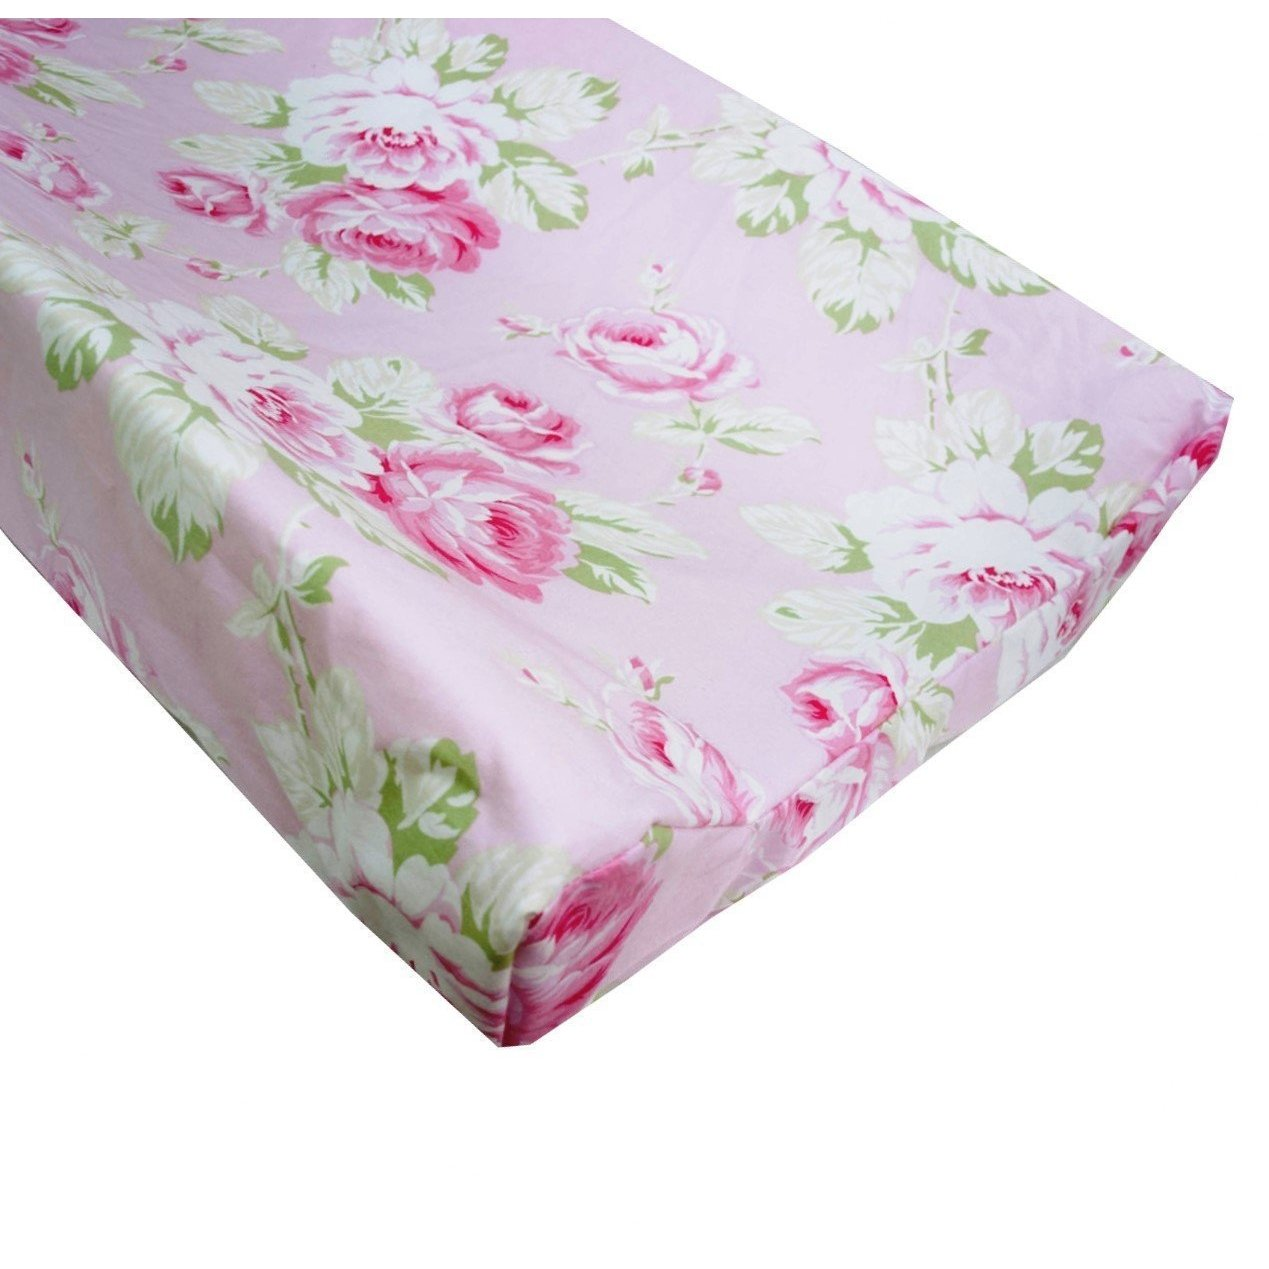 Vintage Shabby Chic Roses Floral Pink | Baby Bedding Set ...